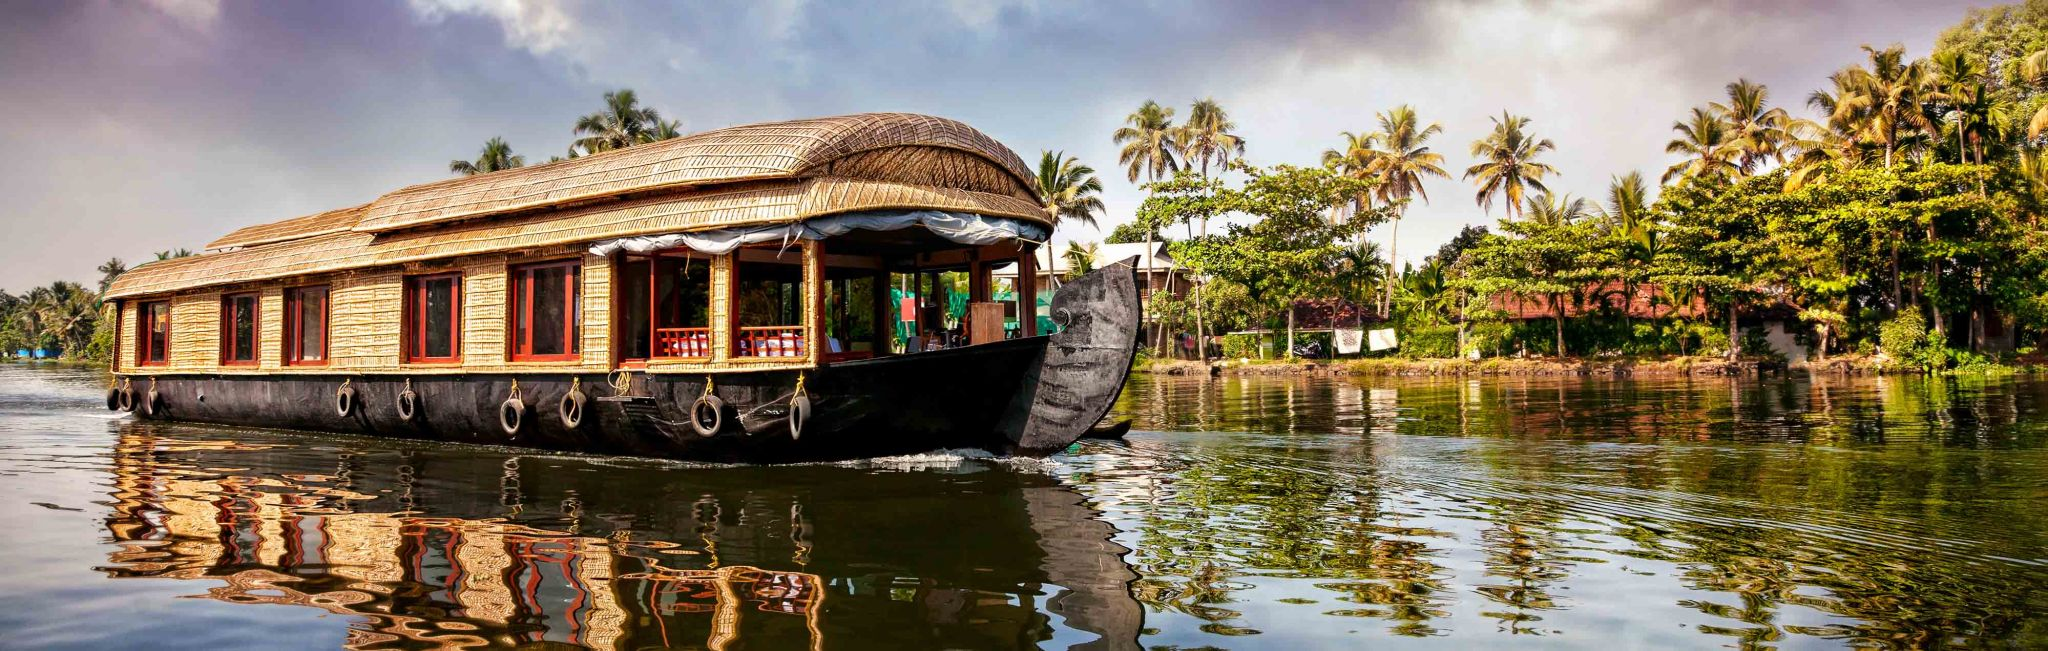 A houseboat in Kerala, India.